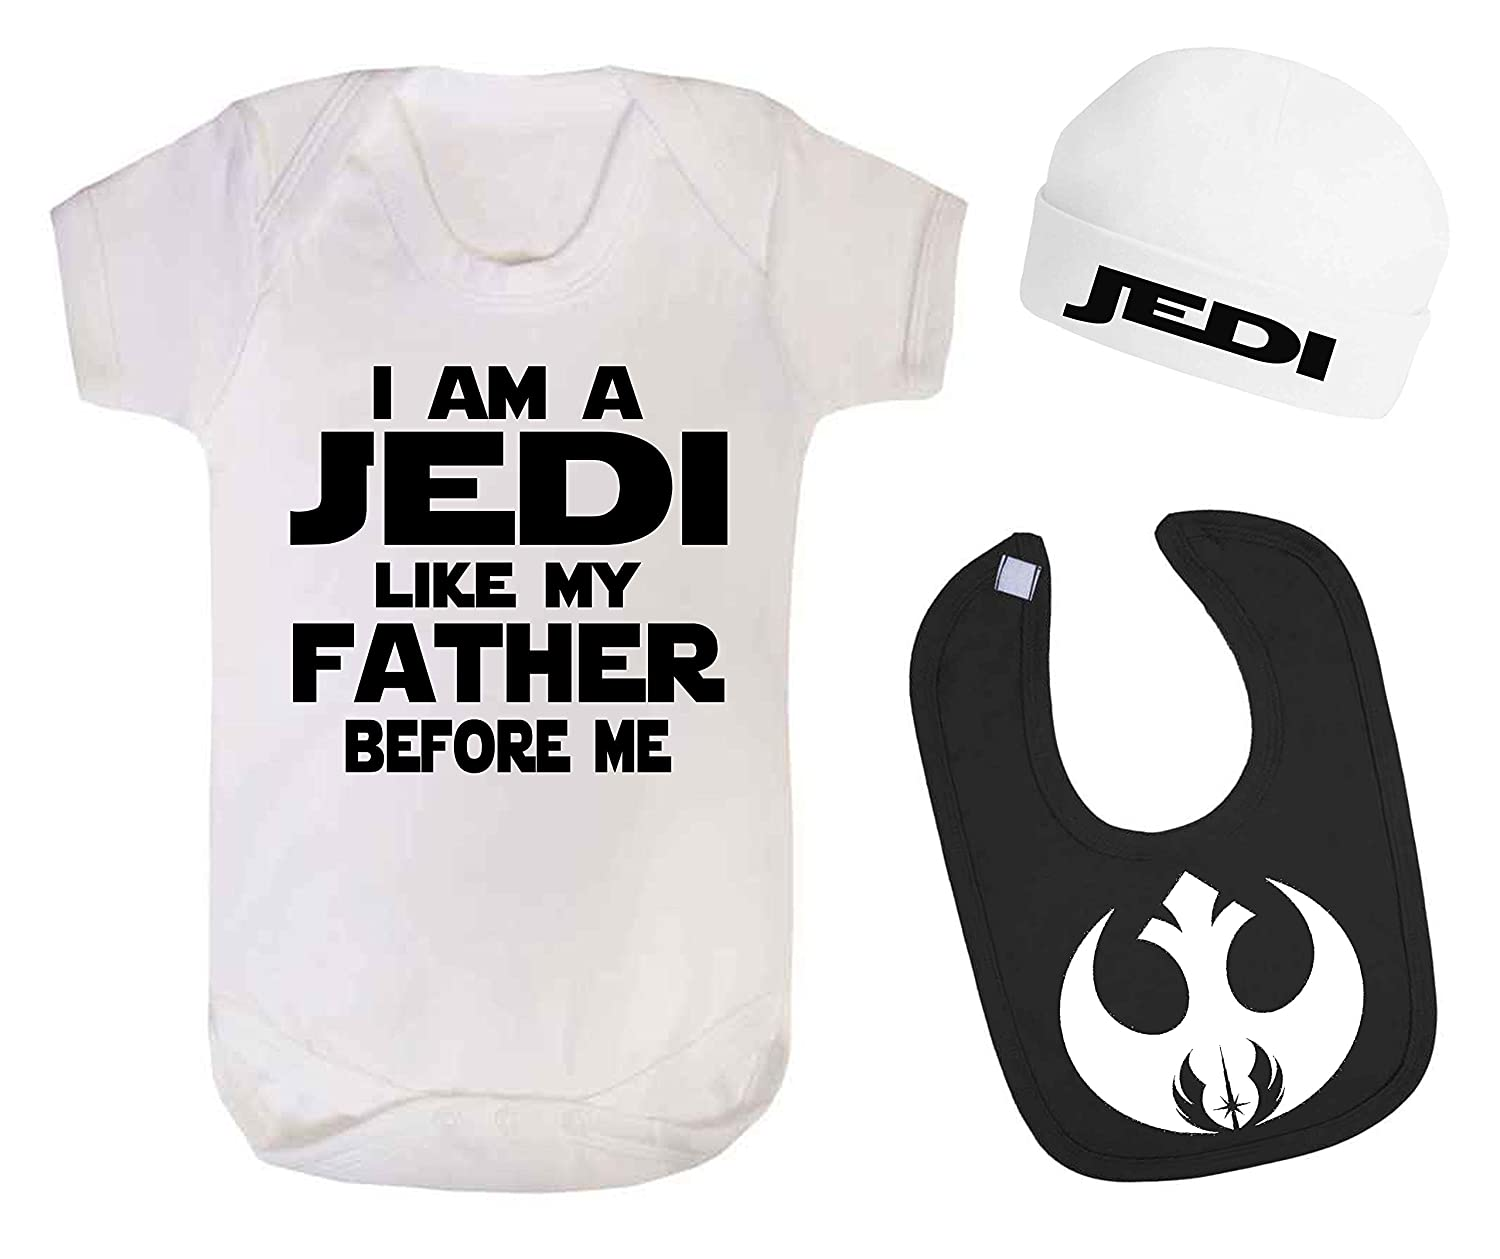 I am a Jedi Like My Father Star Wars Baby Vest Hat and Bib Set Baby Shower Gift Novelty Baby Gift (0-3 Months) ICKLE PEANUT